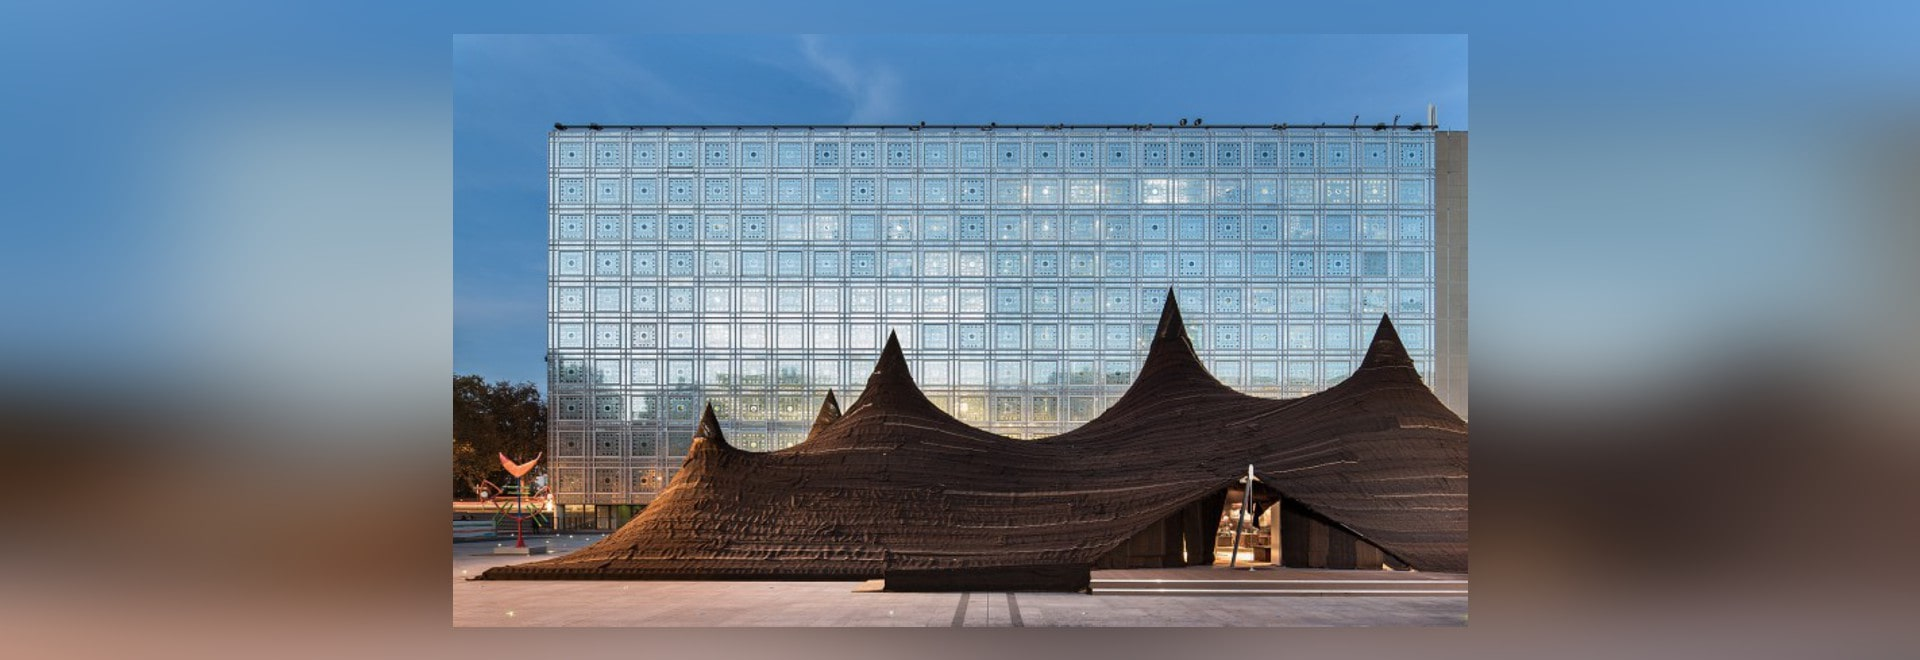 MOROCCAN TENT RISES IN FRONT OF THE INSTITUT DU MONDE ARABE